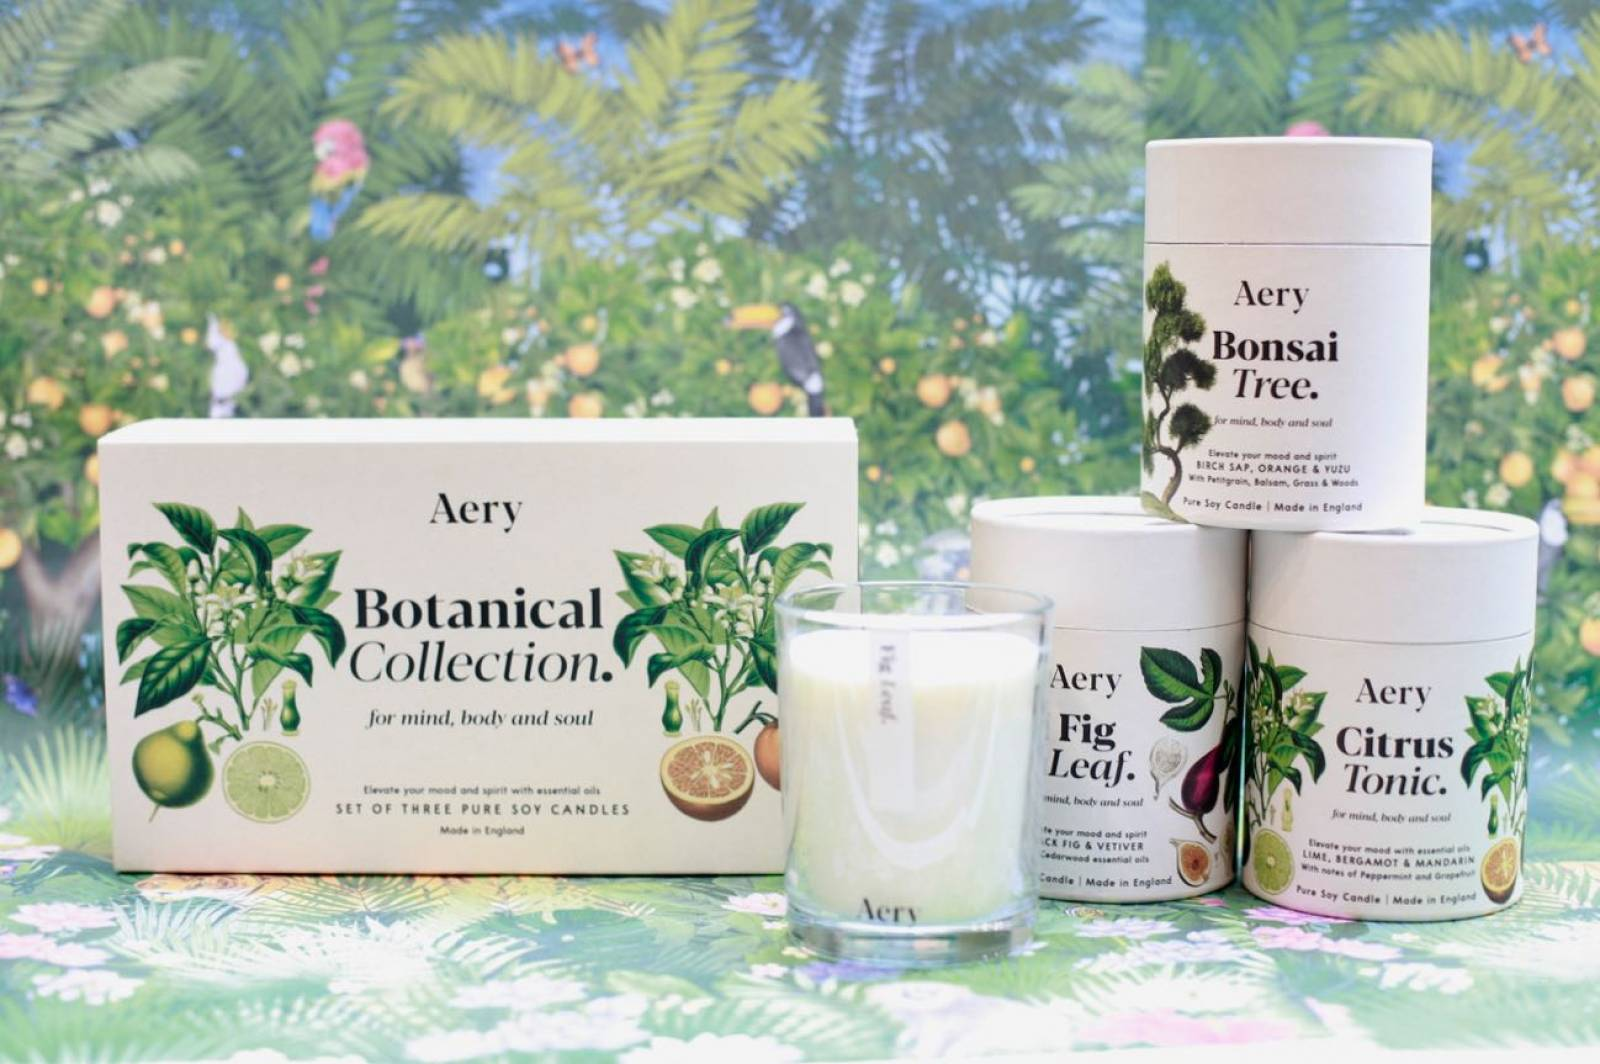 Bonsai Tree Boxed Candle By Aery thumbnails